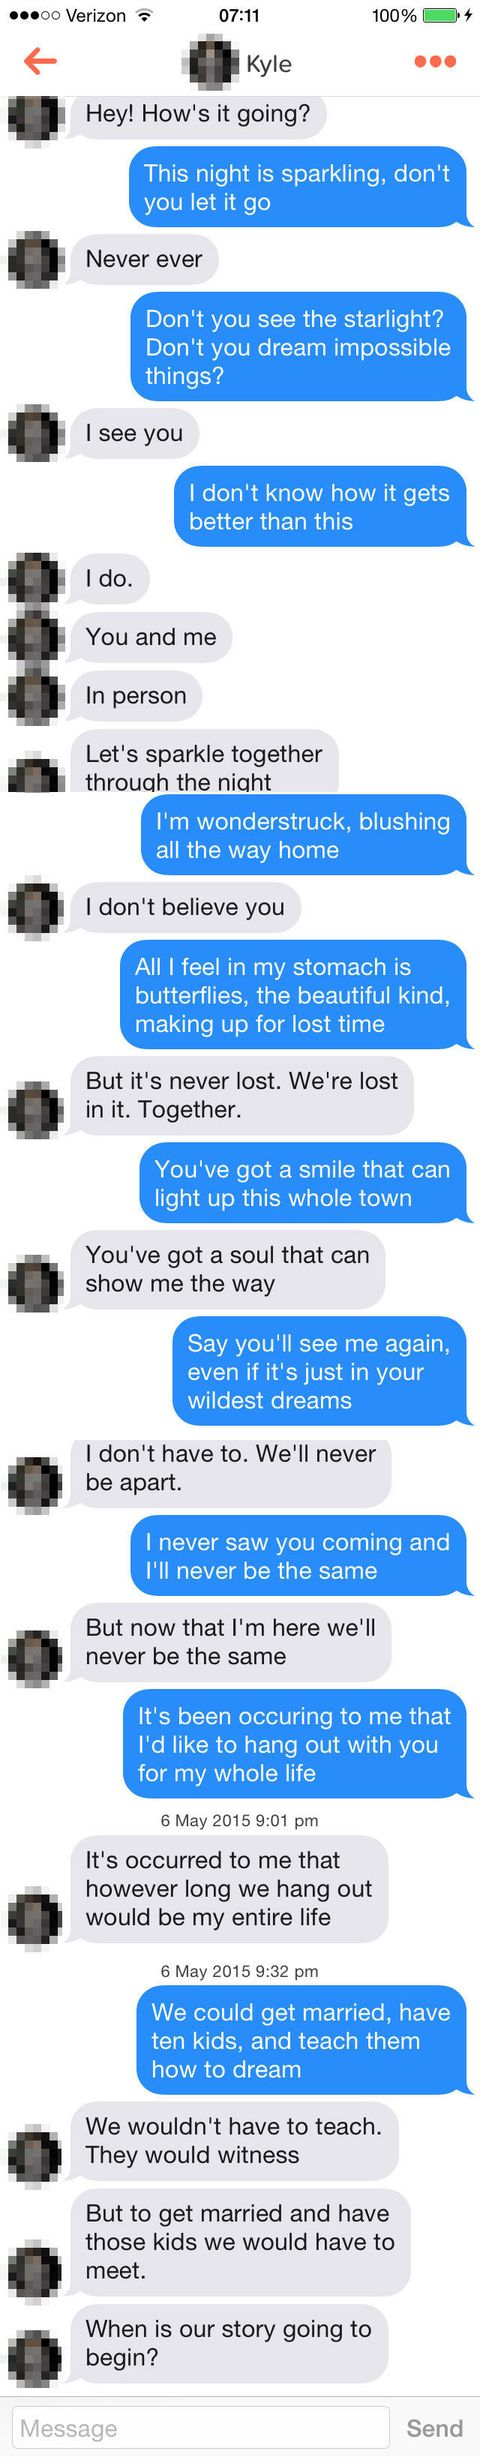 TayText for iPhone - Taylor Swift Lyrics for Texting